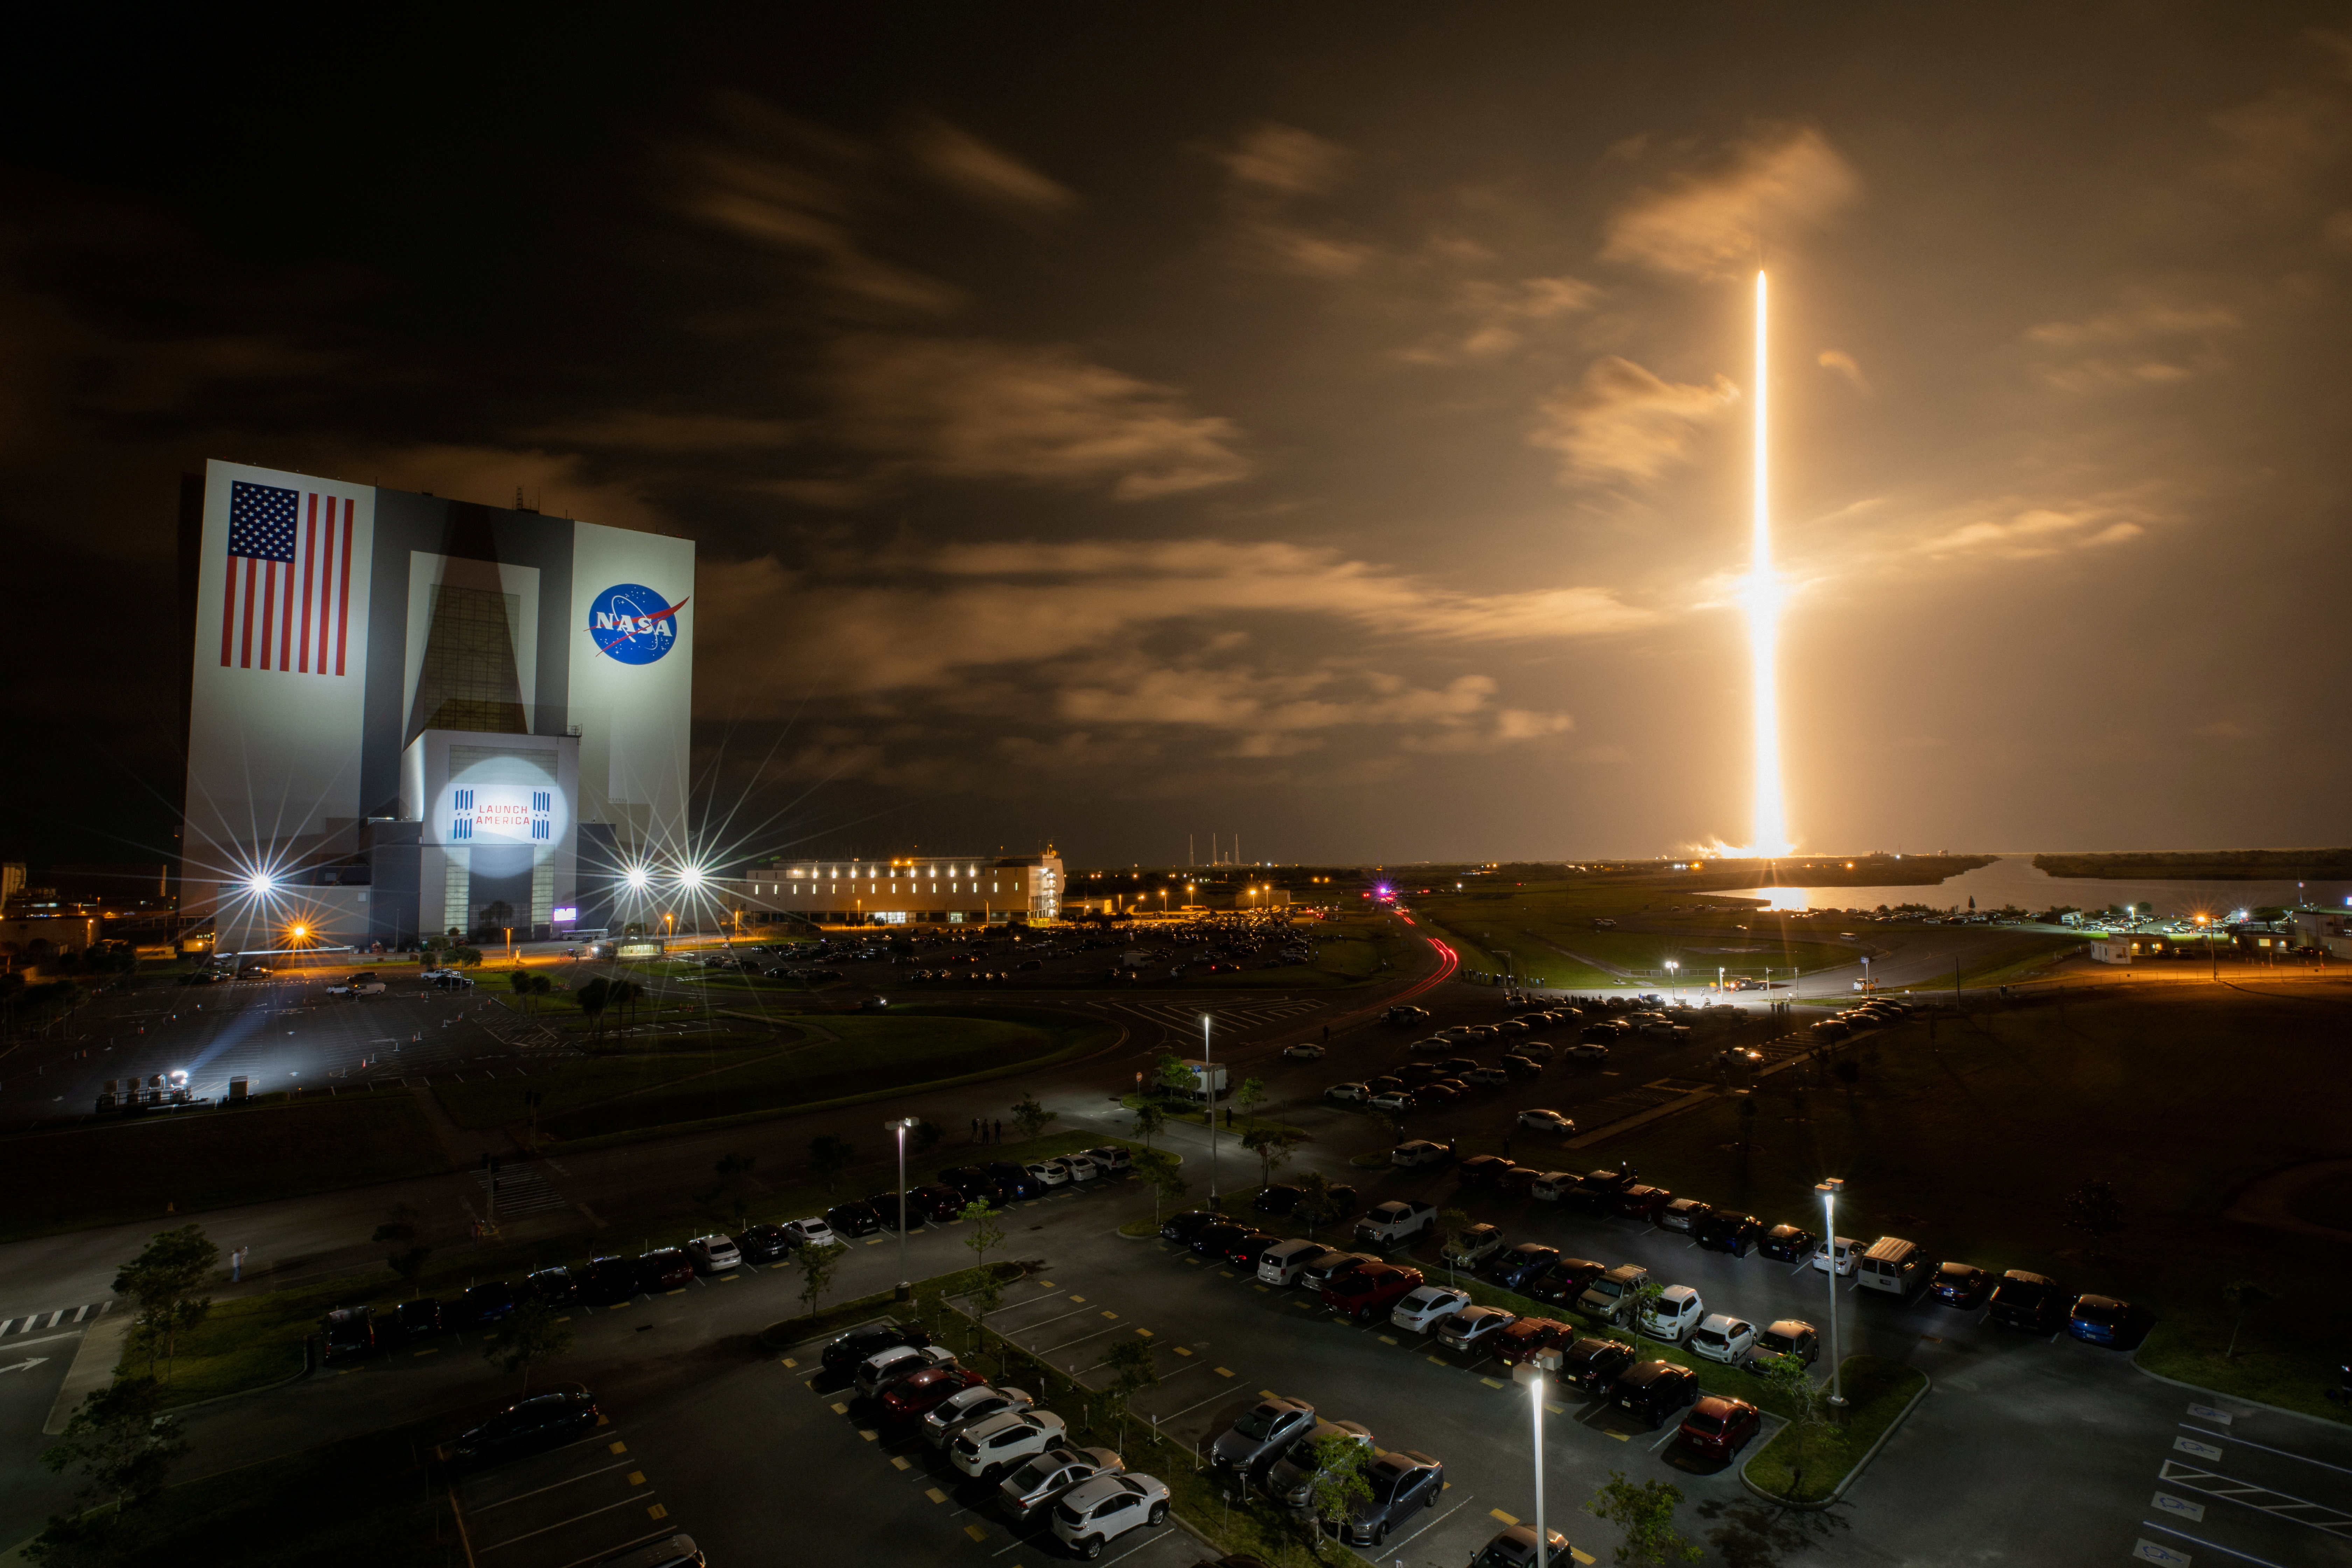 With a view of the iconic Vehicle Assembly Building at left, a SpaceX Falcon 9 rocket soars upward from Launch Complex 39A carrying the company's Crew Dragon Endeavour capsule and four Crew-2 astronauts towards the International Space Station at NASA's Kennedy Space Center in Cape Canaveral, Florida, U.S. April 23, 2021.   NASA/Ben Smegelsky/Handout via REUTERS